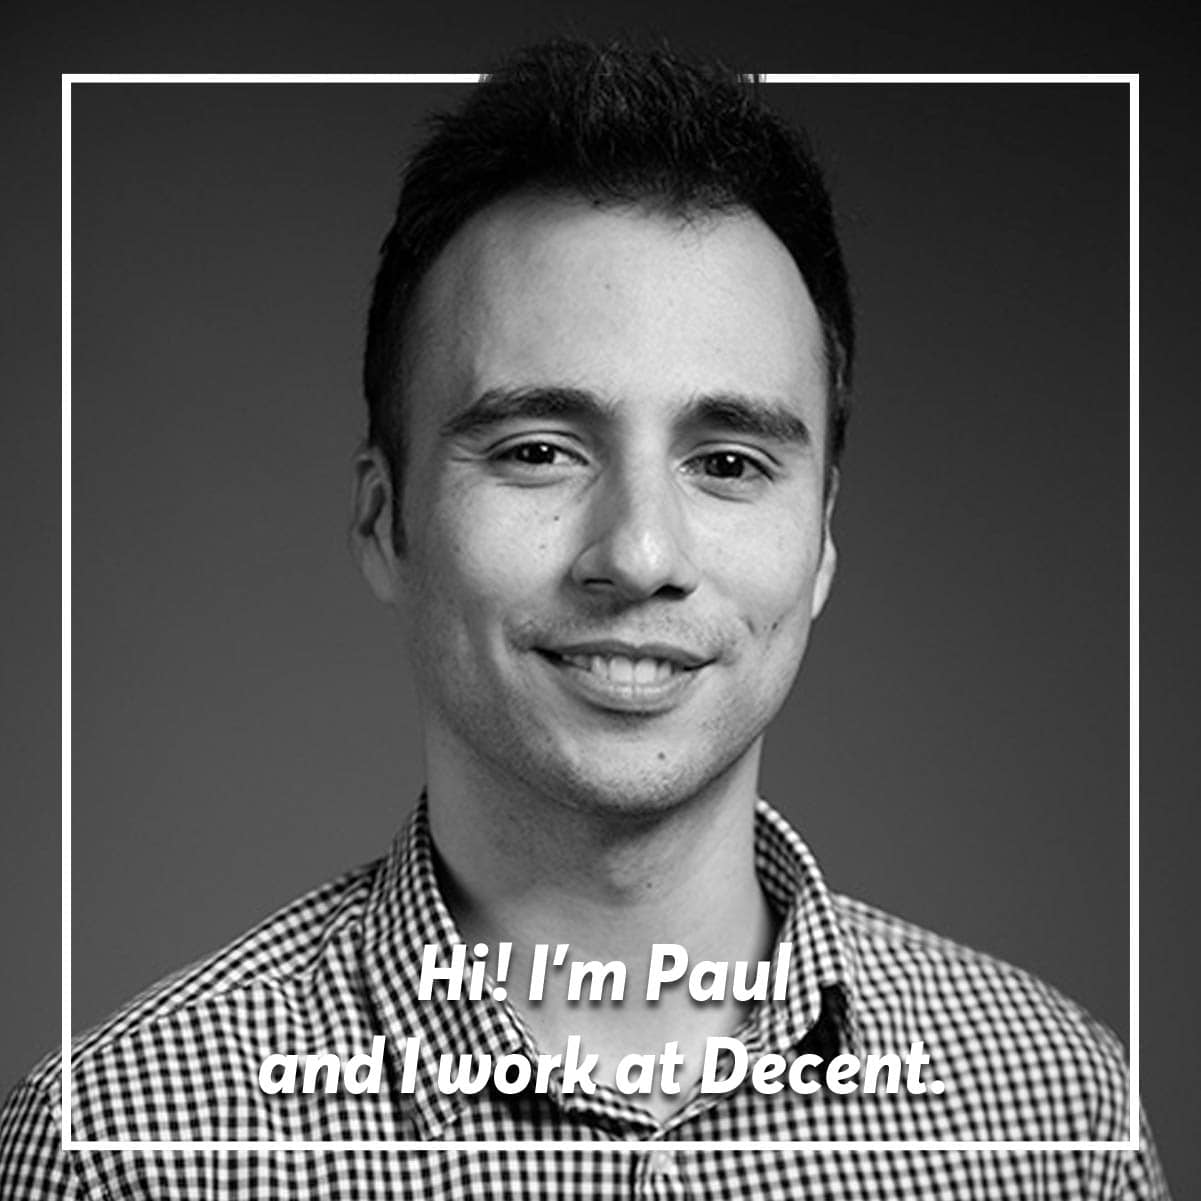 I'm an IT project manager at Decent. My job is...